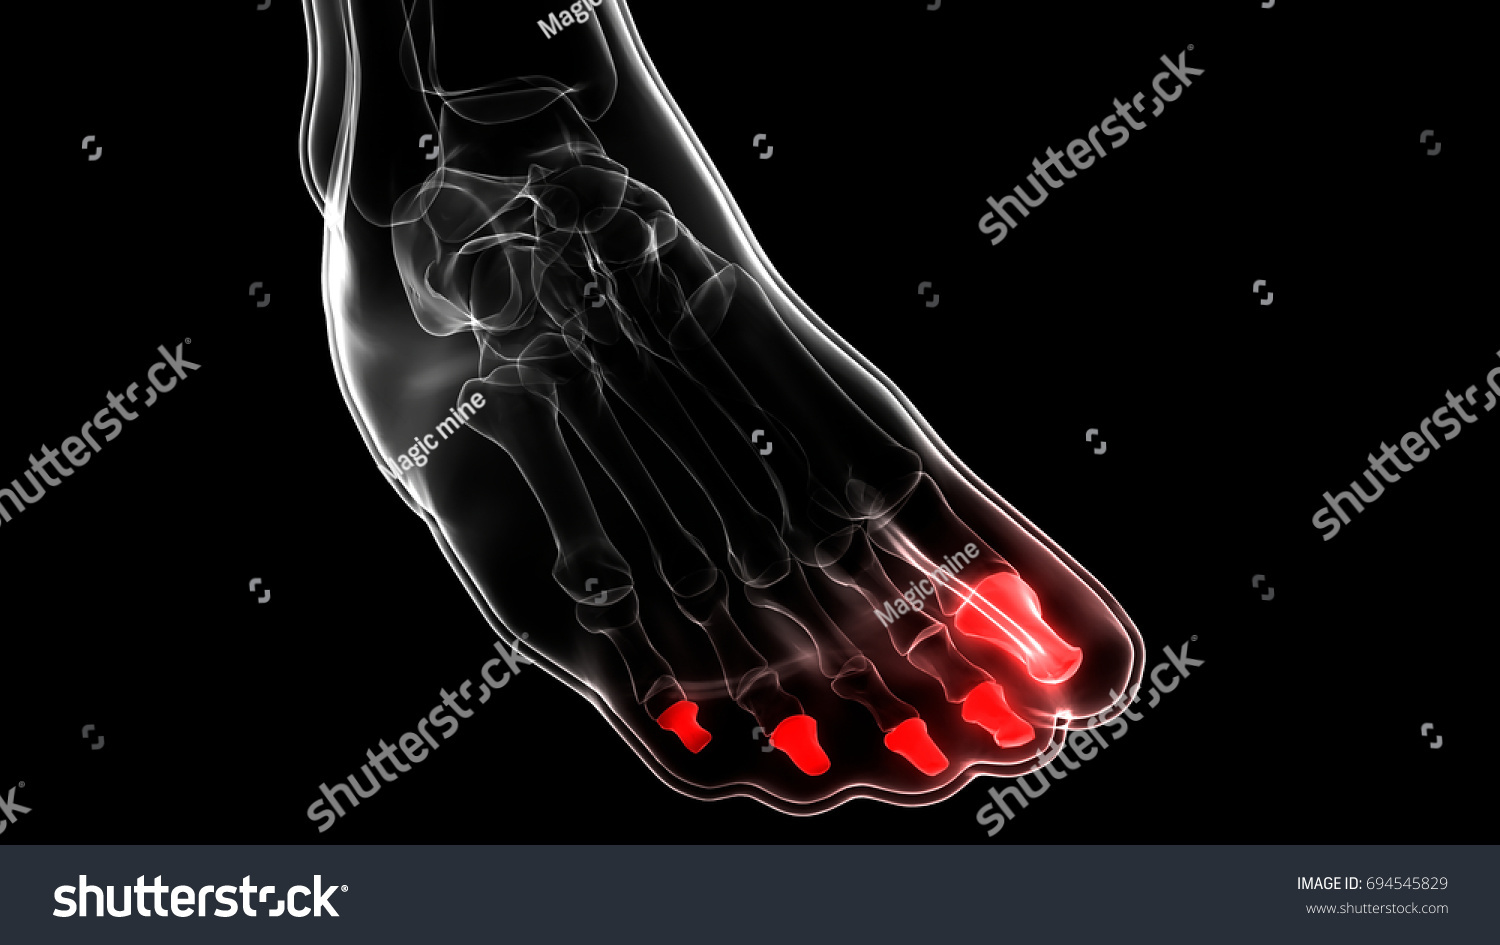 Human Skeleton Foot Joints Anatomy Distal Stock Illustration ...